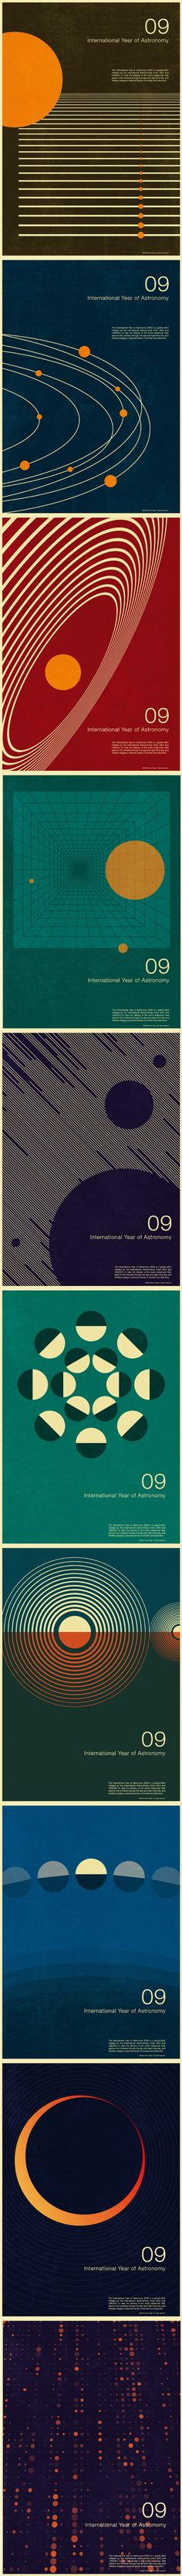 International Year of Astronomy print series, Simon C Page, 2009